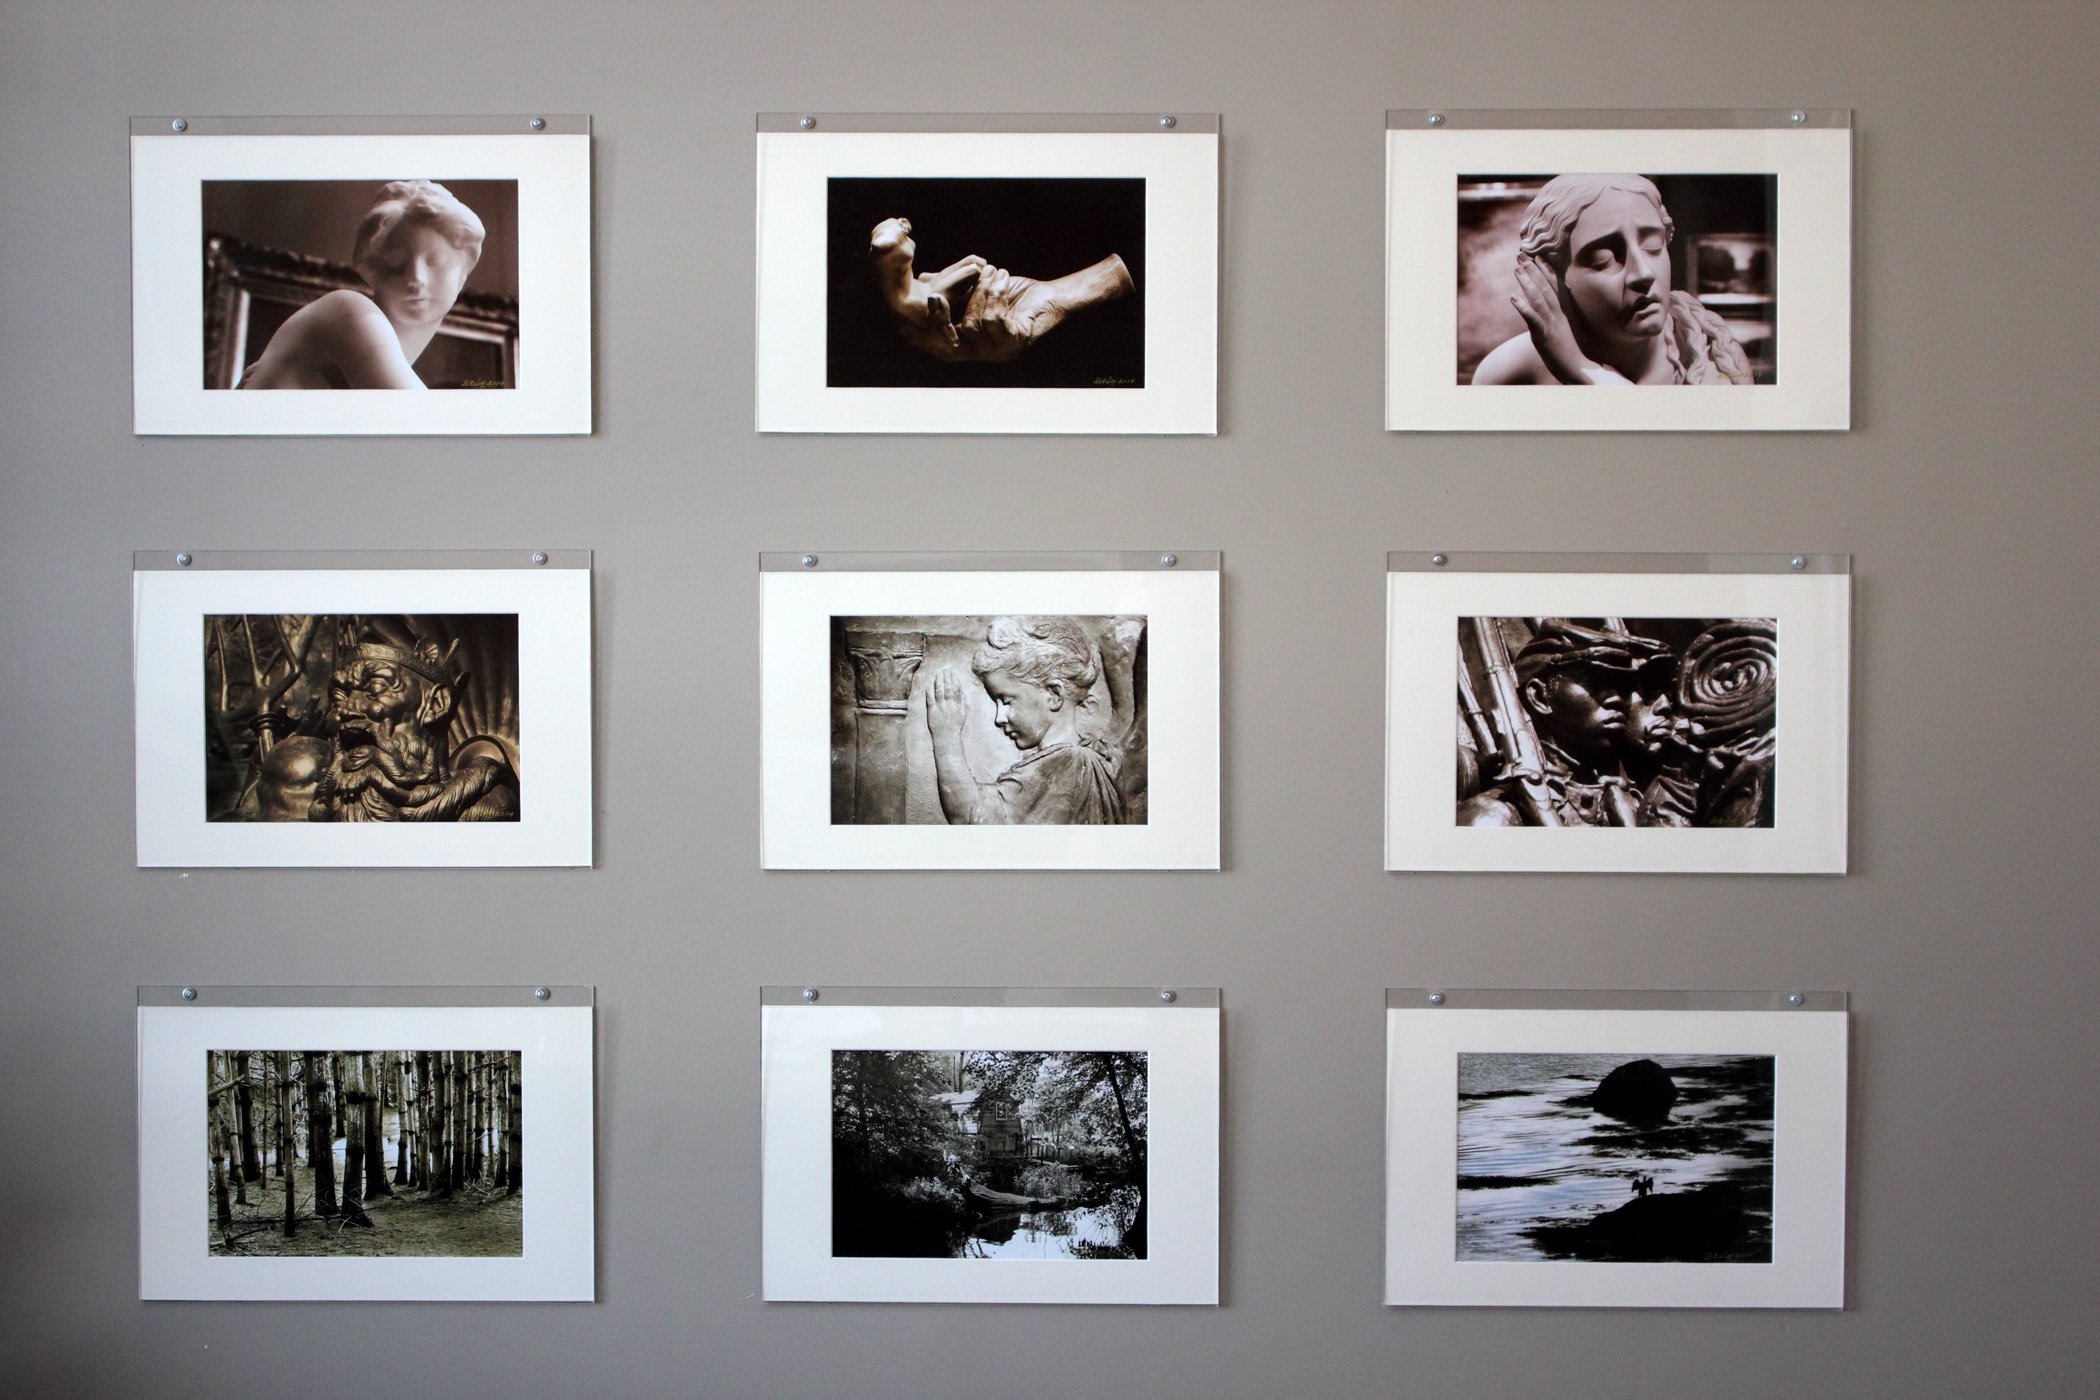 Figure 1 - New exhibit of David's photographs at RMD in Watertown, MA. (c) DE Wolf 2014